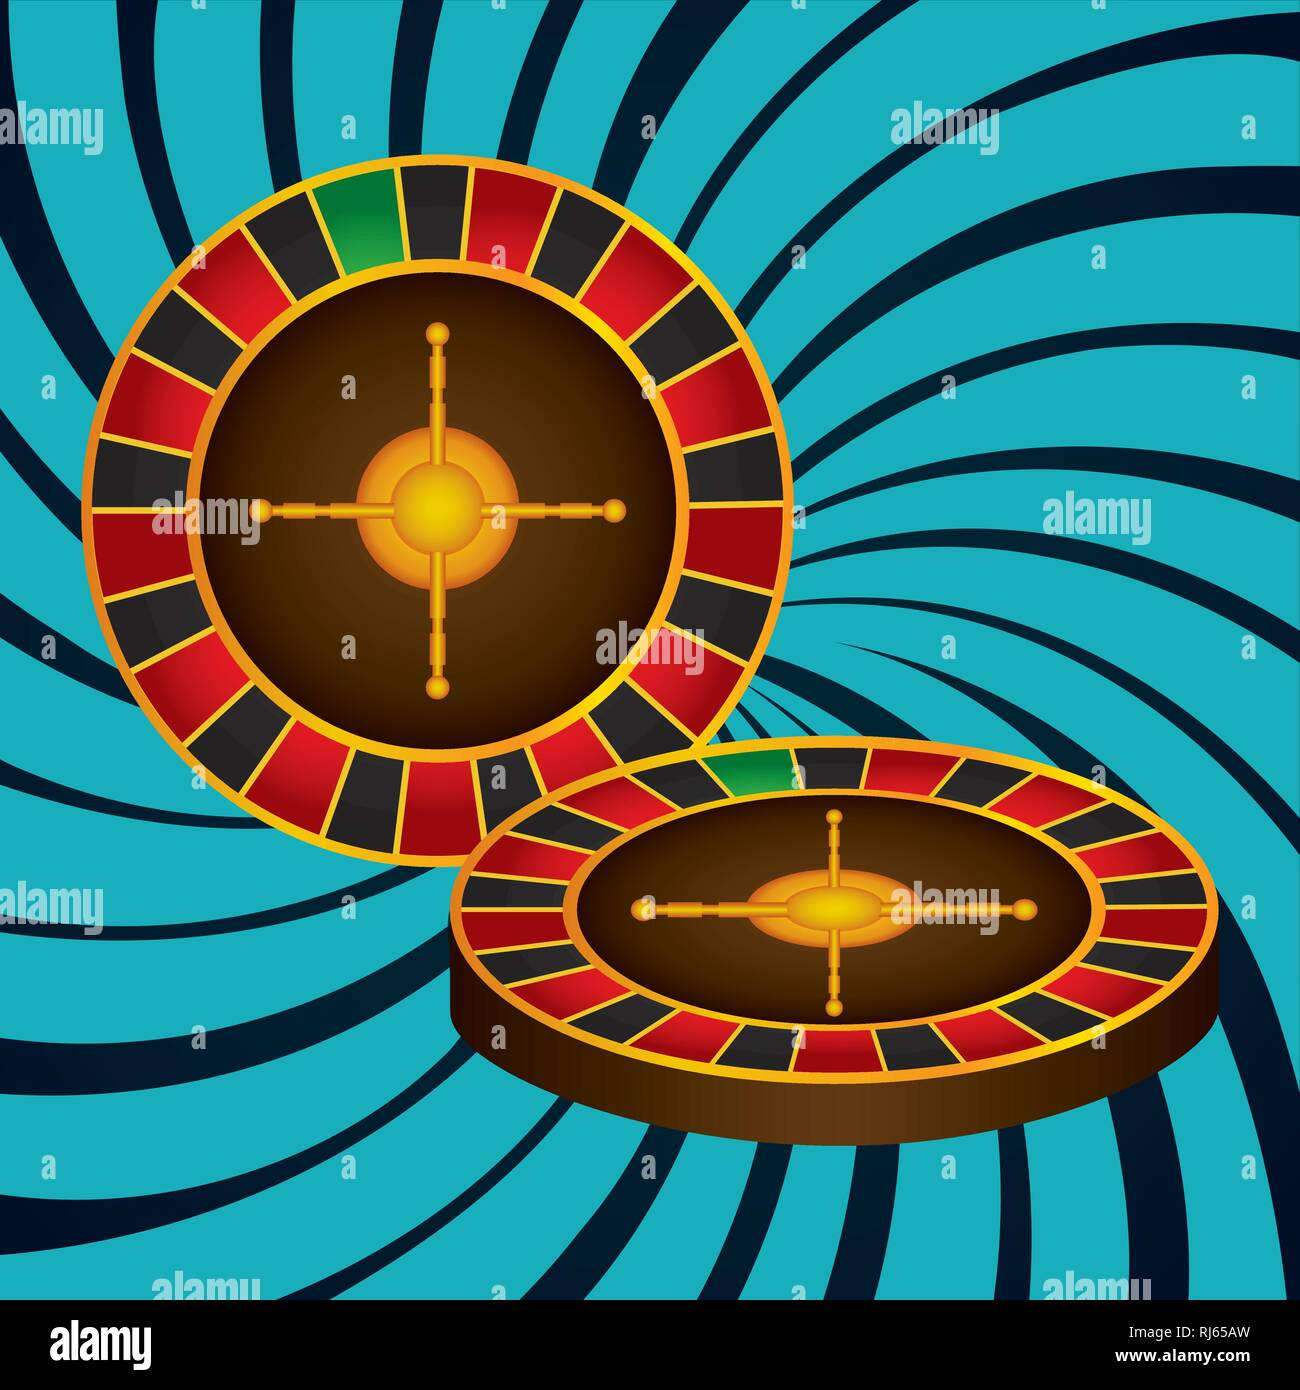 roulette fortune casino icons vector illustration design - Stock Image